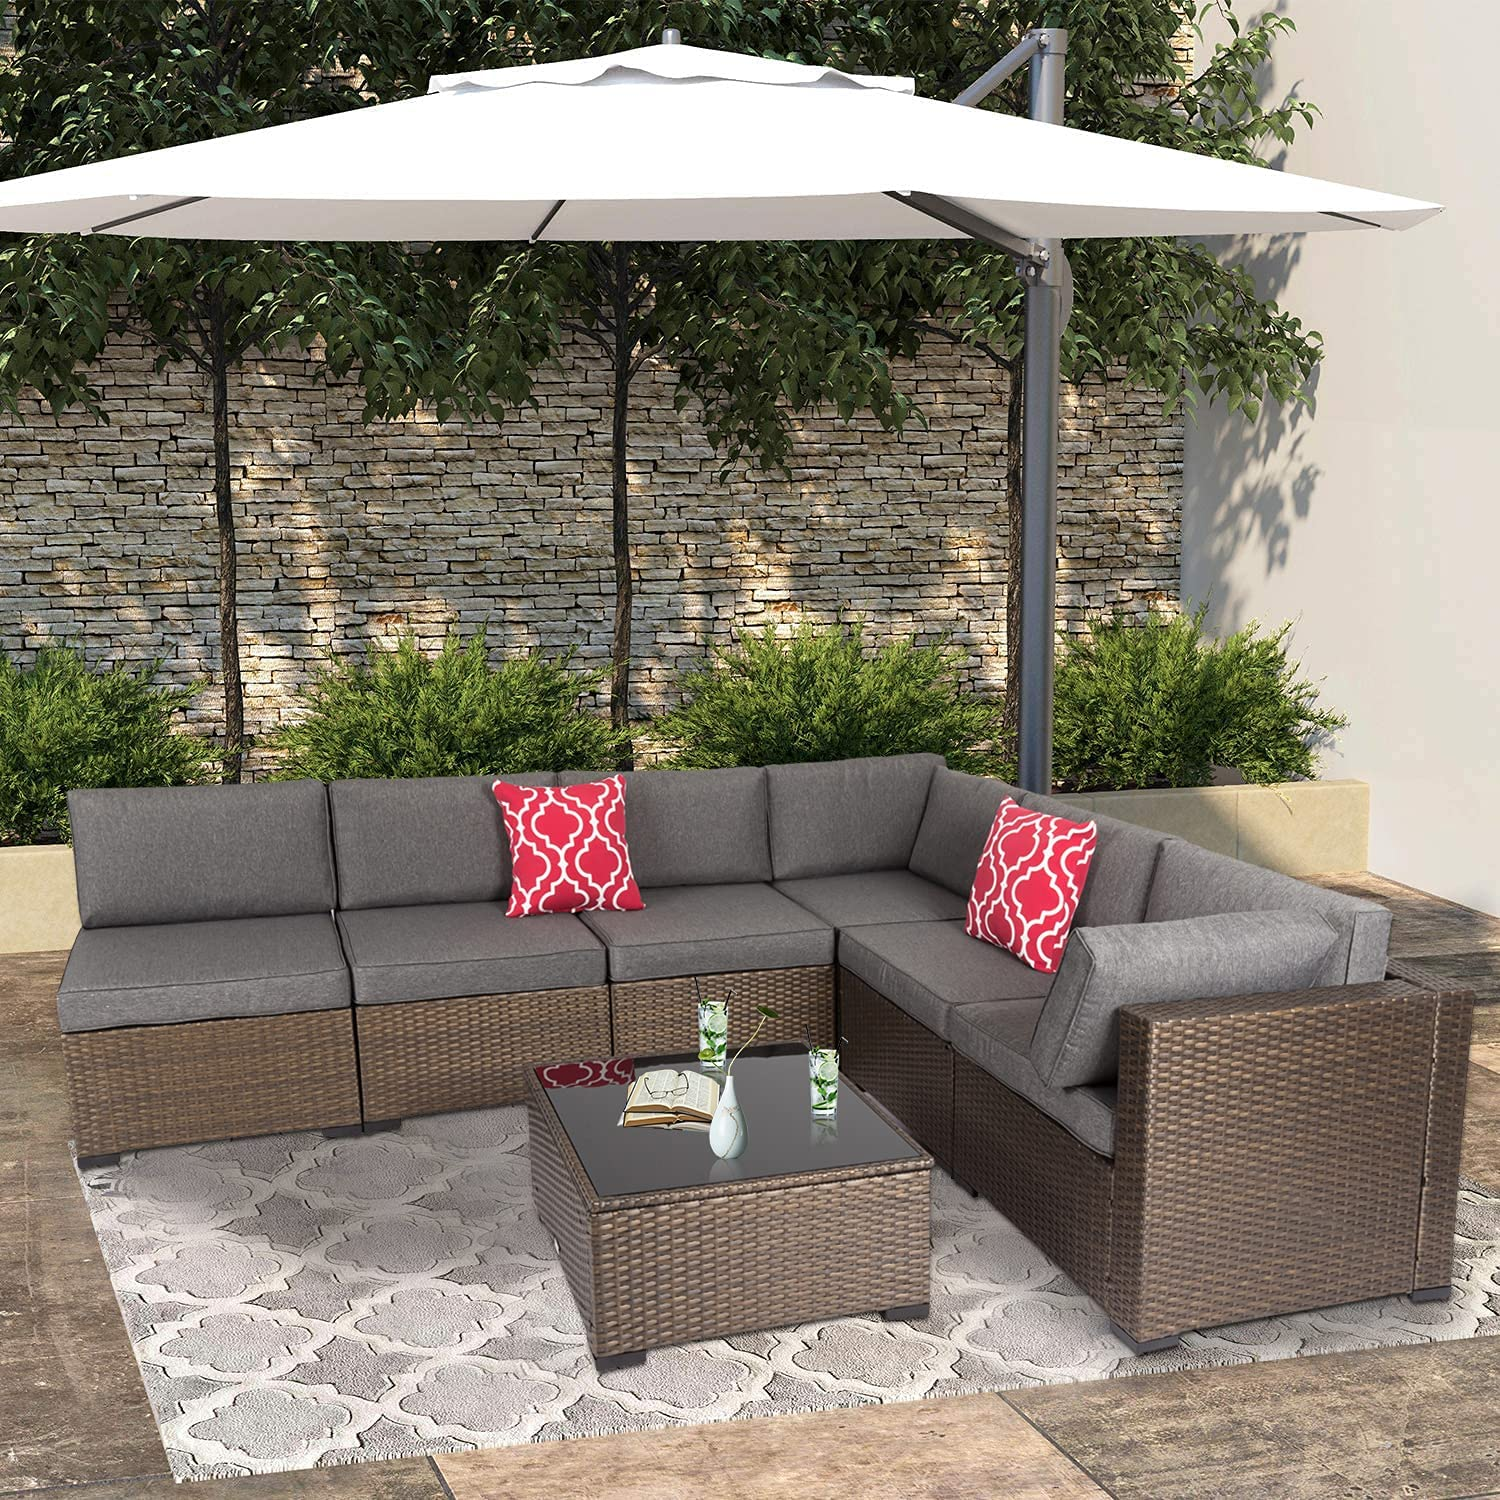 7 Piece Outdoor PE Wicker Furniture Set, Patio Rattan Sectional Sofa Couch with Washable Cushions,Glass Table and 2 Pcs Red Pillows for Garden,Backyard